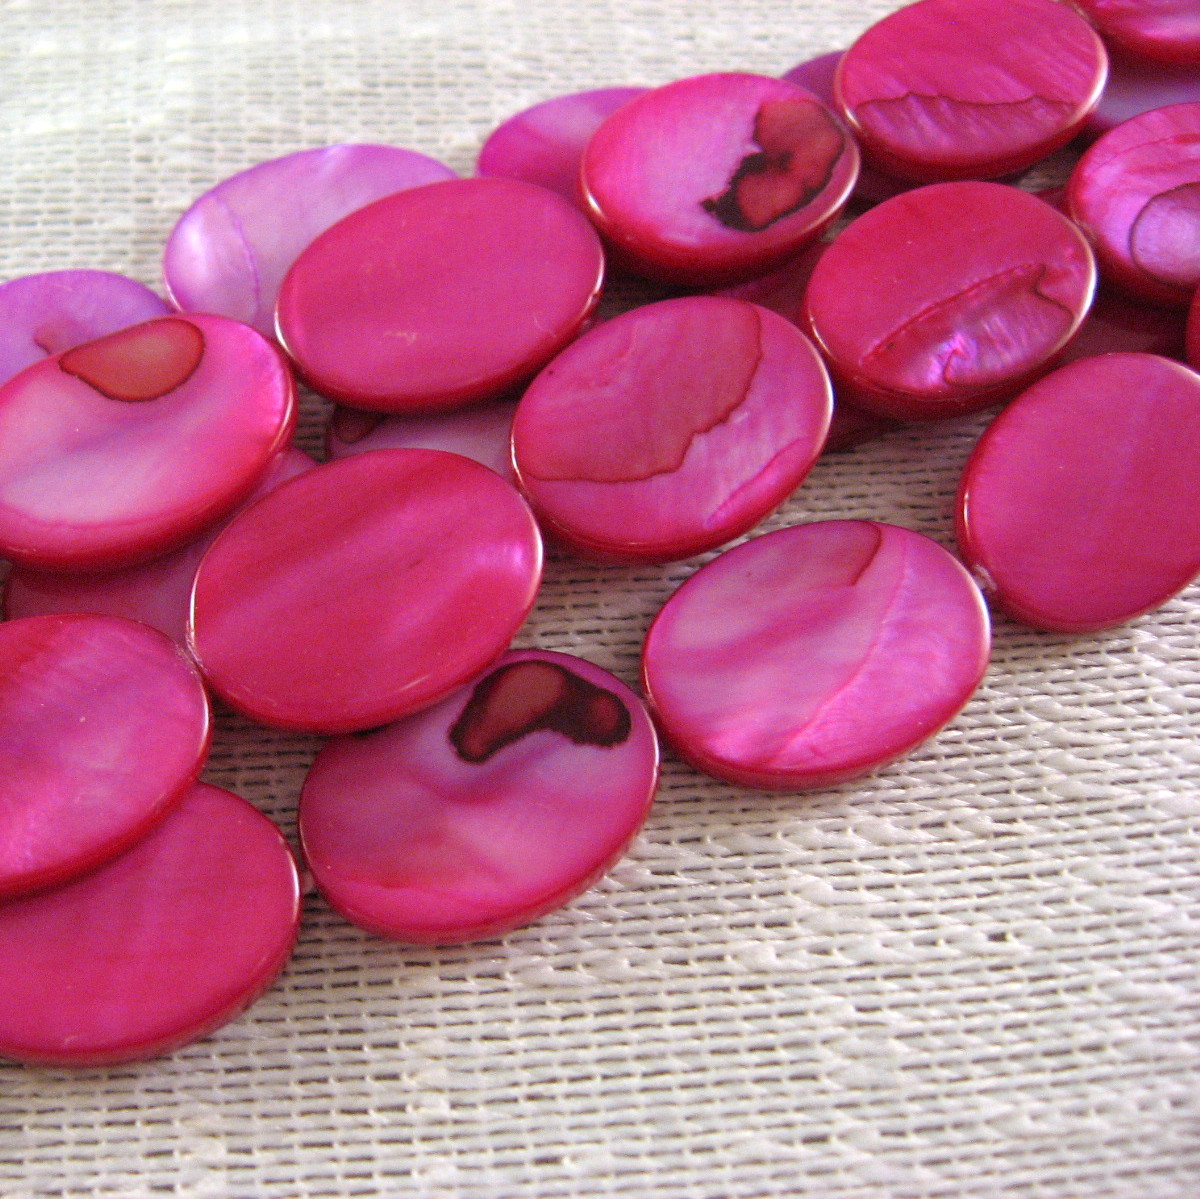 """Fuchsia Pink Mother of Pearl Shell Beads Flat Oval 18mm 1 16"""" str, 22 beads image 2"""